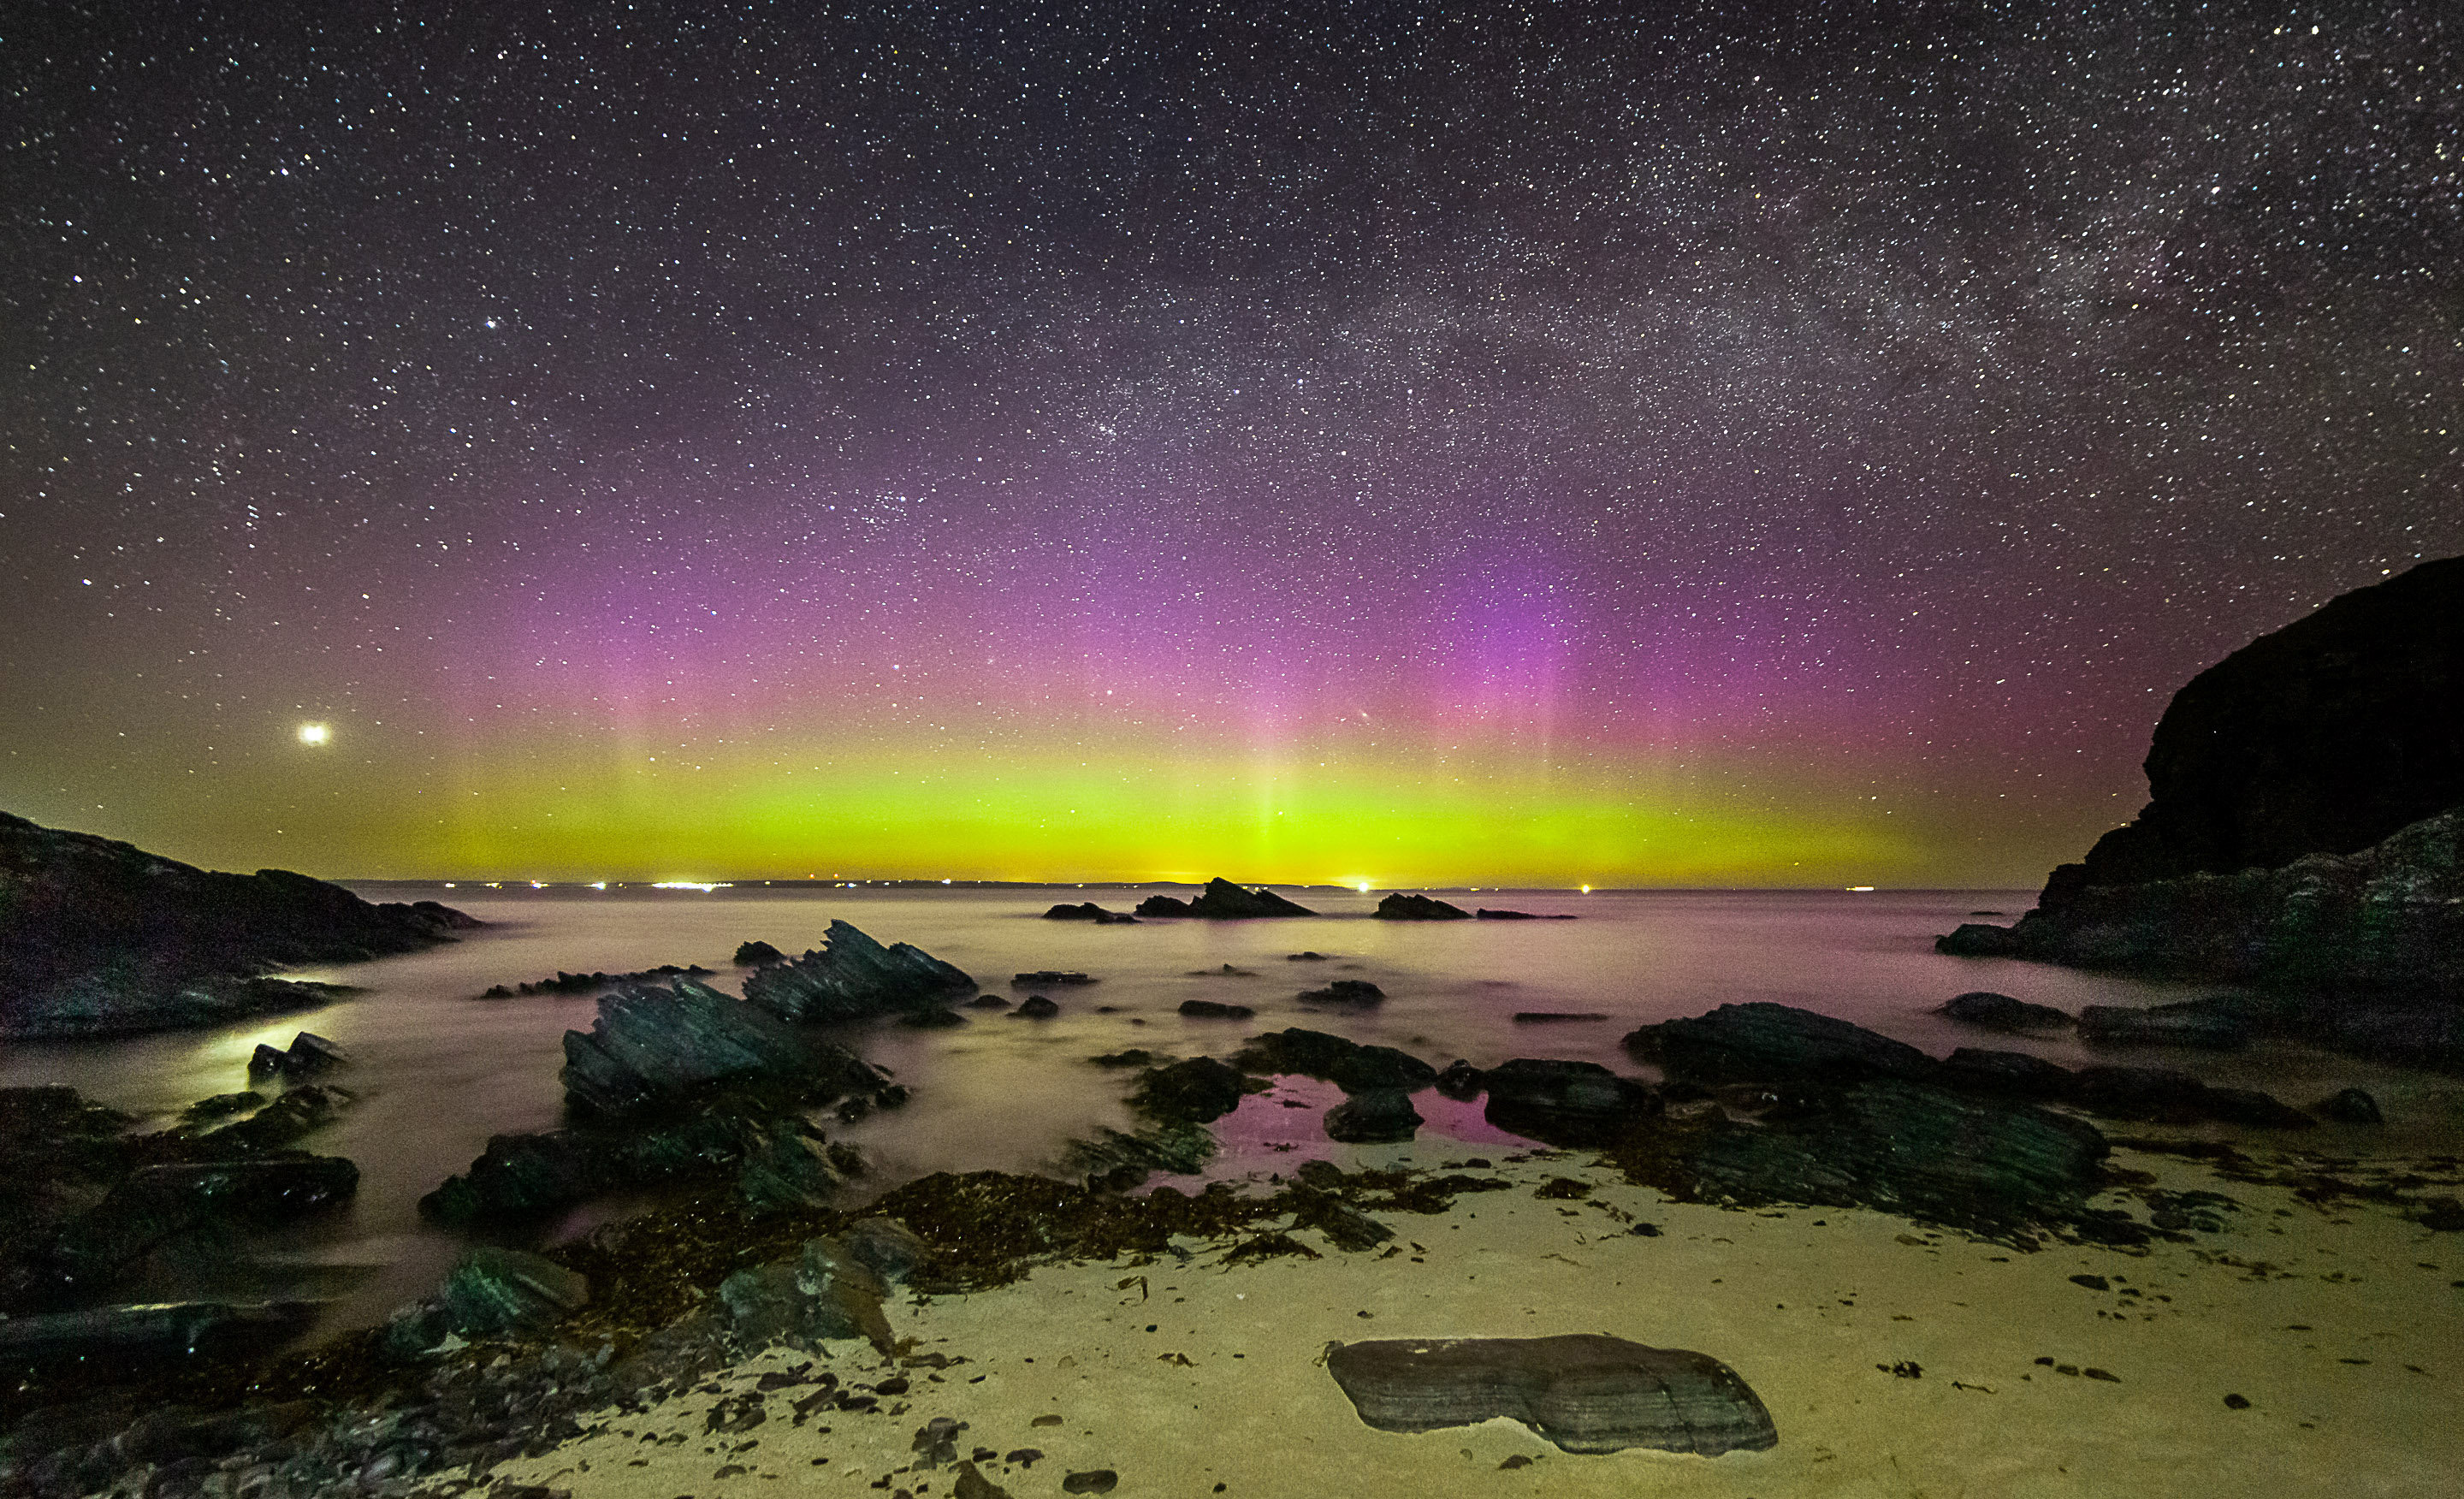 Donald trump Northern Lights shown over Scotland beach in stunning image thumbnail